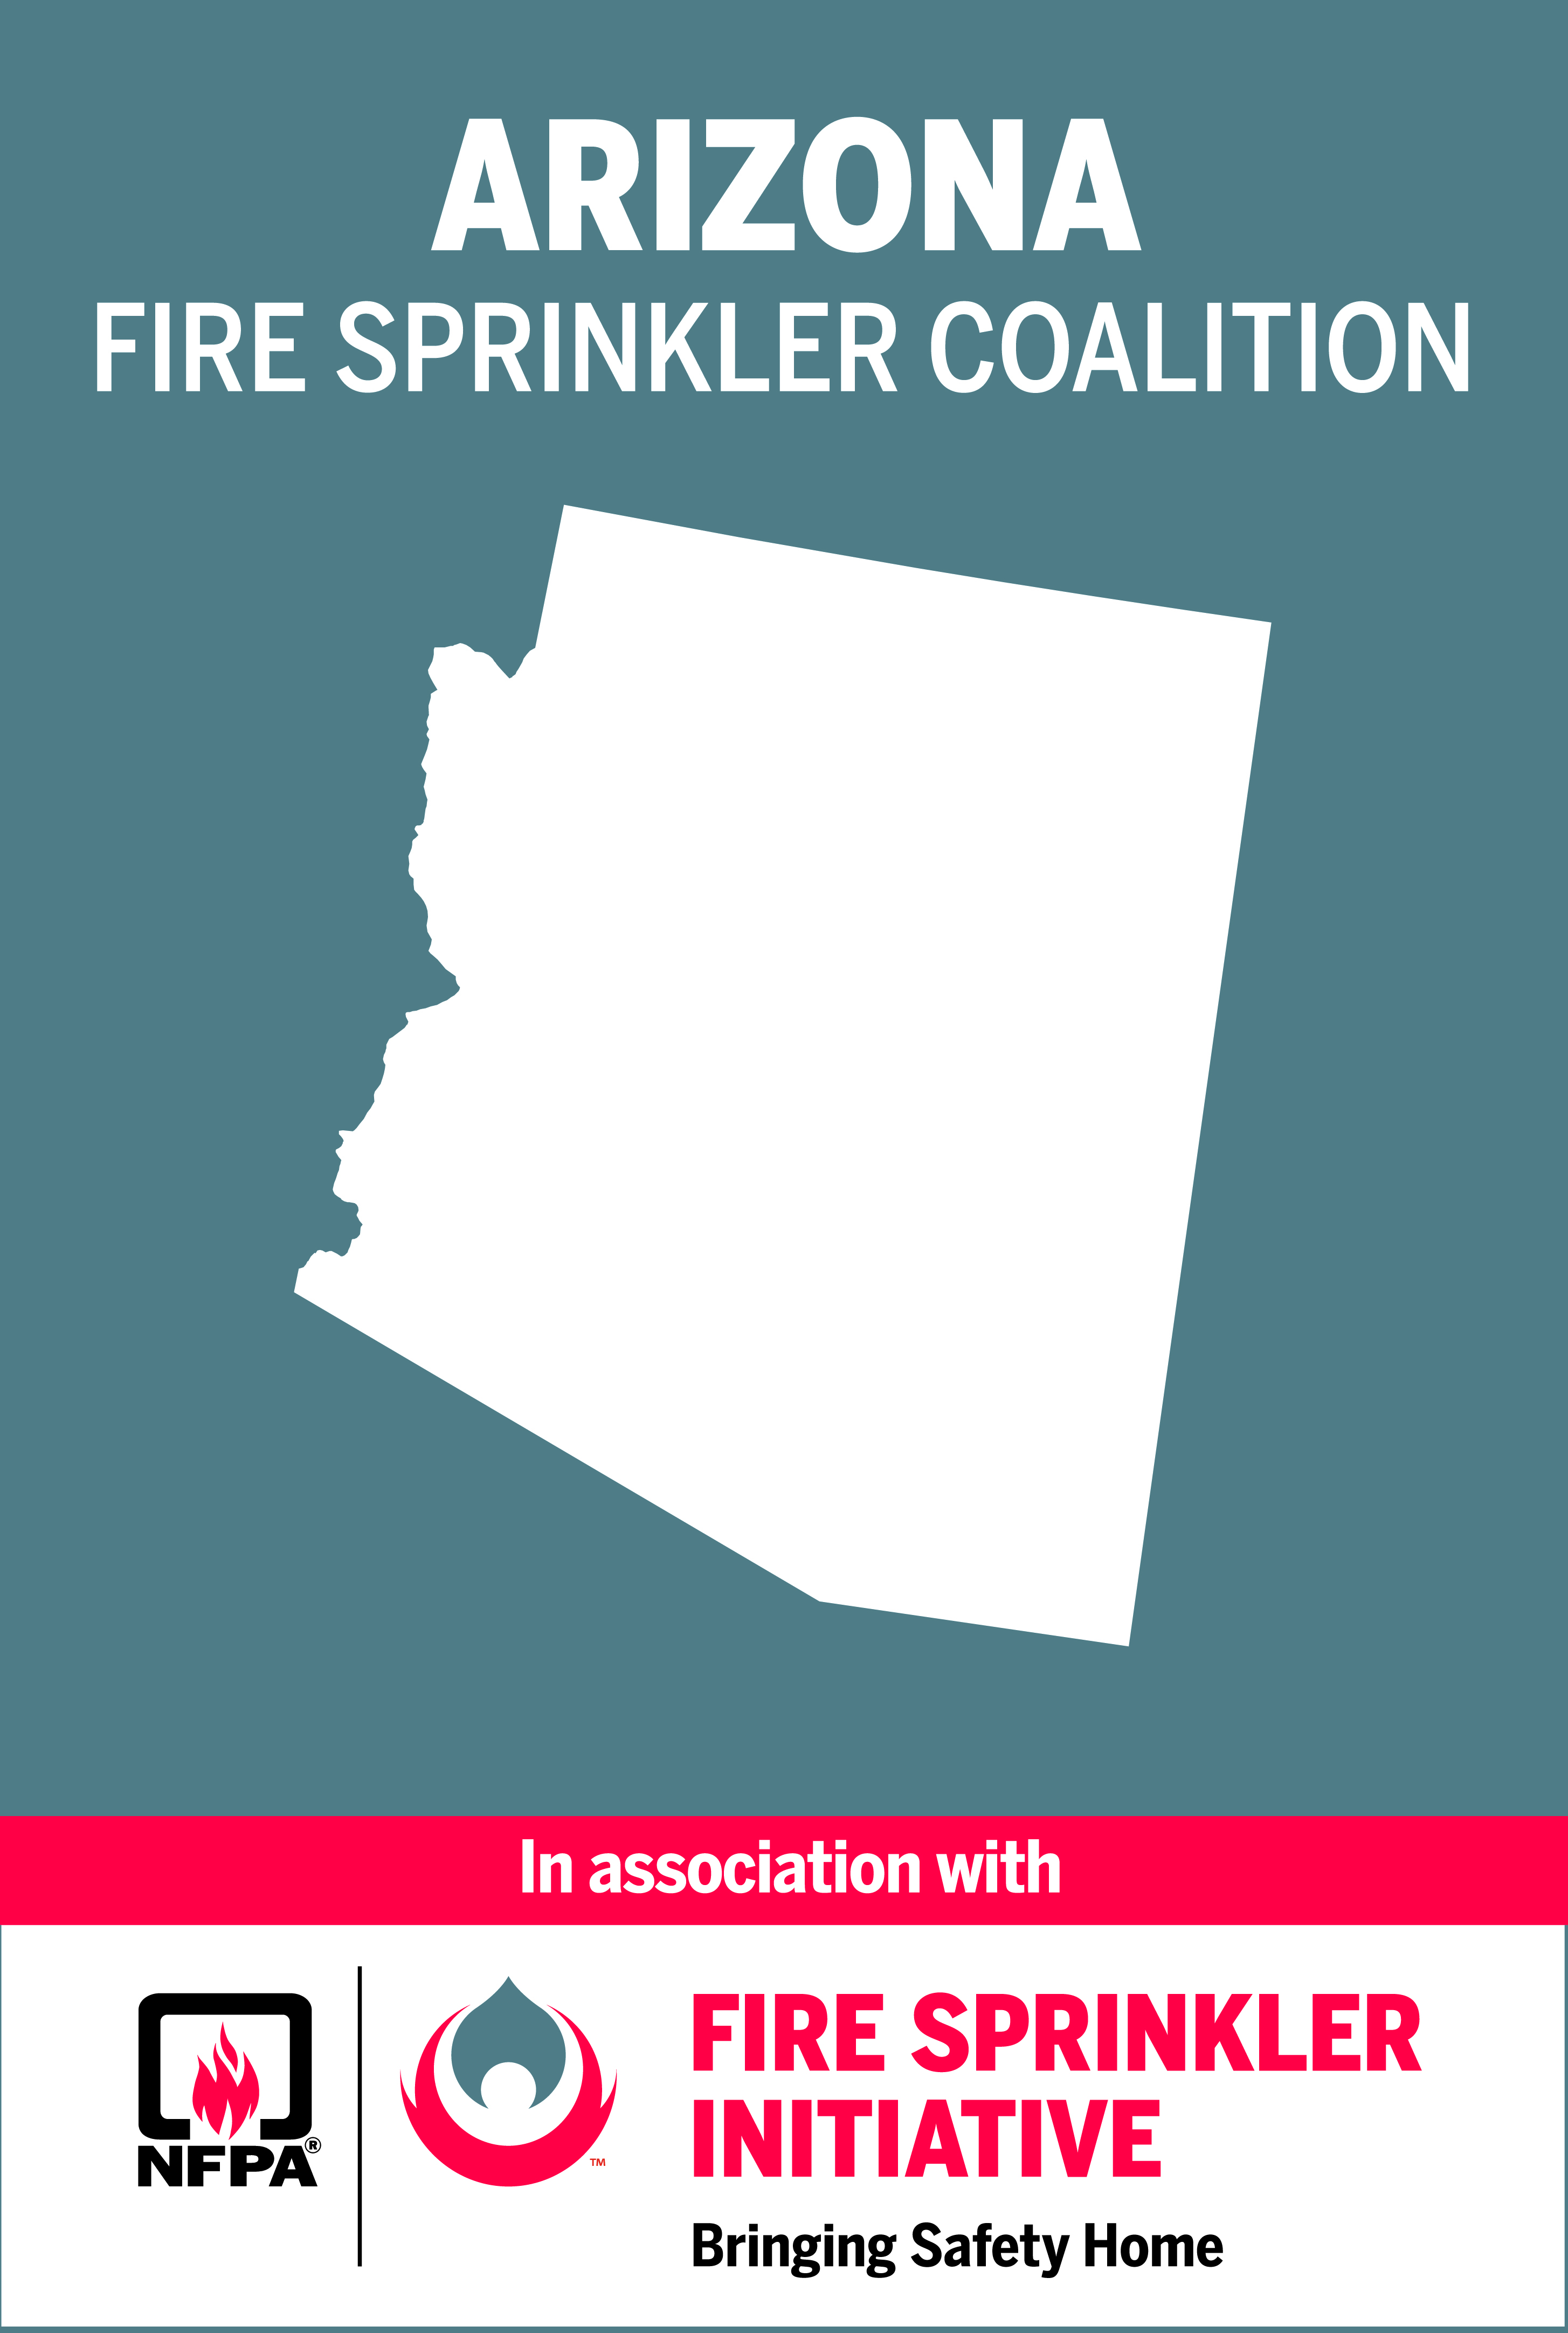 Arizona Fire Sprinkler Coalition